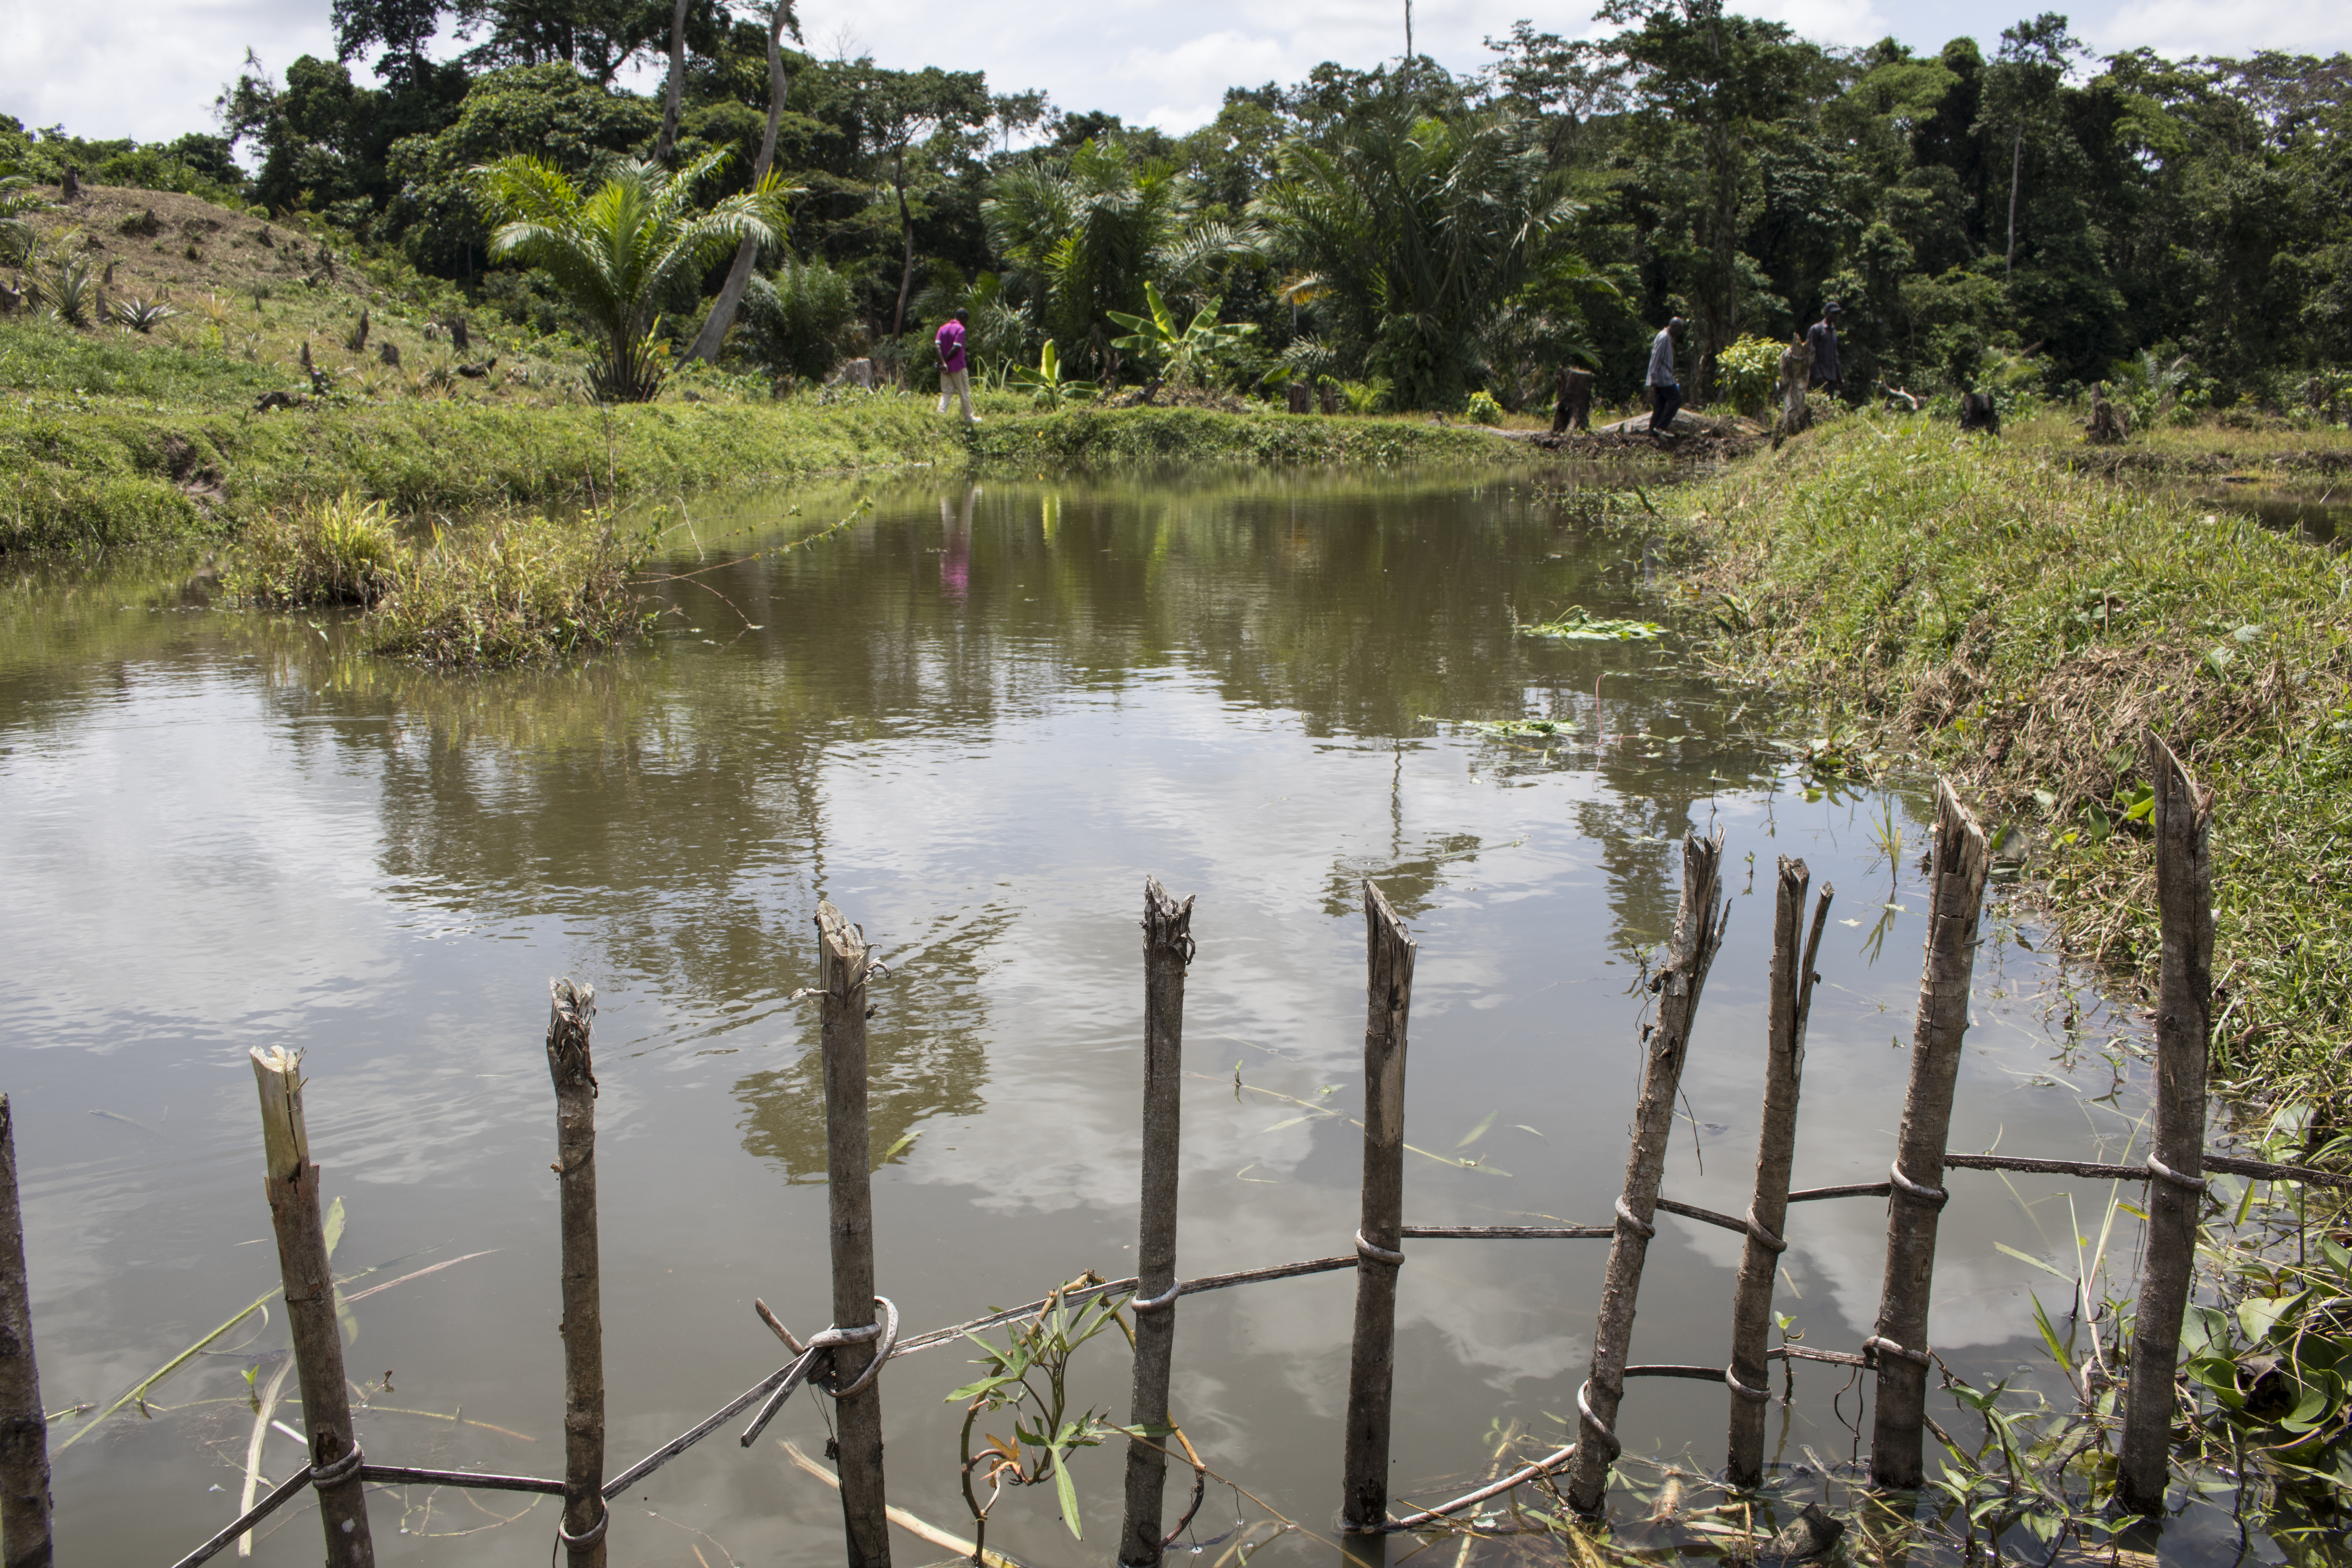 A manmade fishpond at a model farm in Monkoto. By diversifying their products, farmers can bring in more income while getting higher yields out of existing farmland, reducing their need to cut down more forest. (Photo by Molly Bergen/WCS, WWF, WRI)